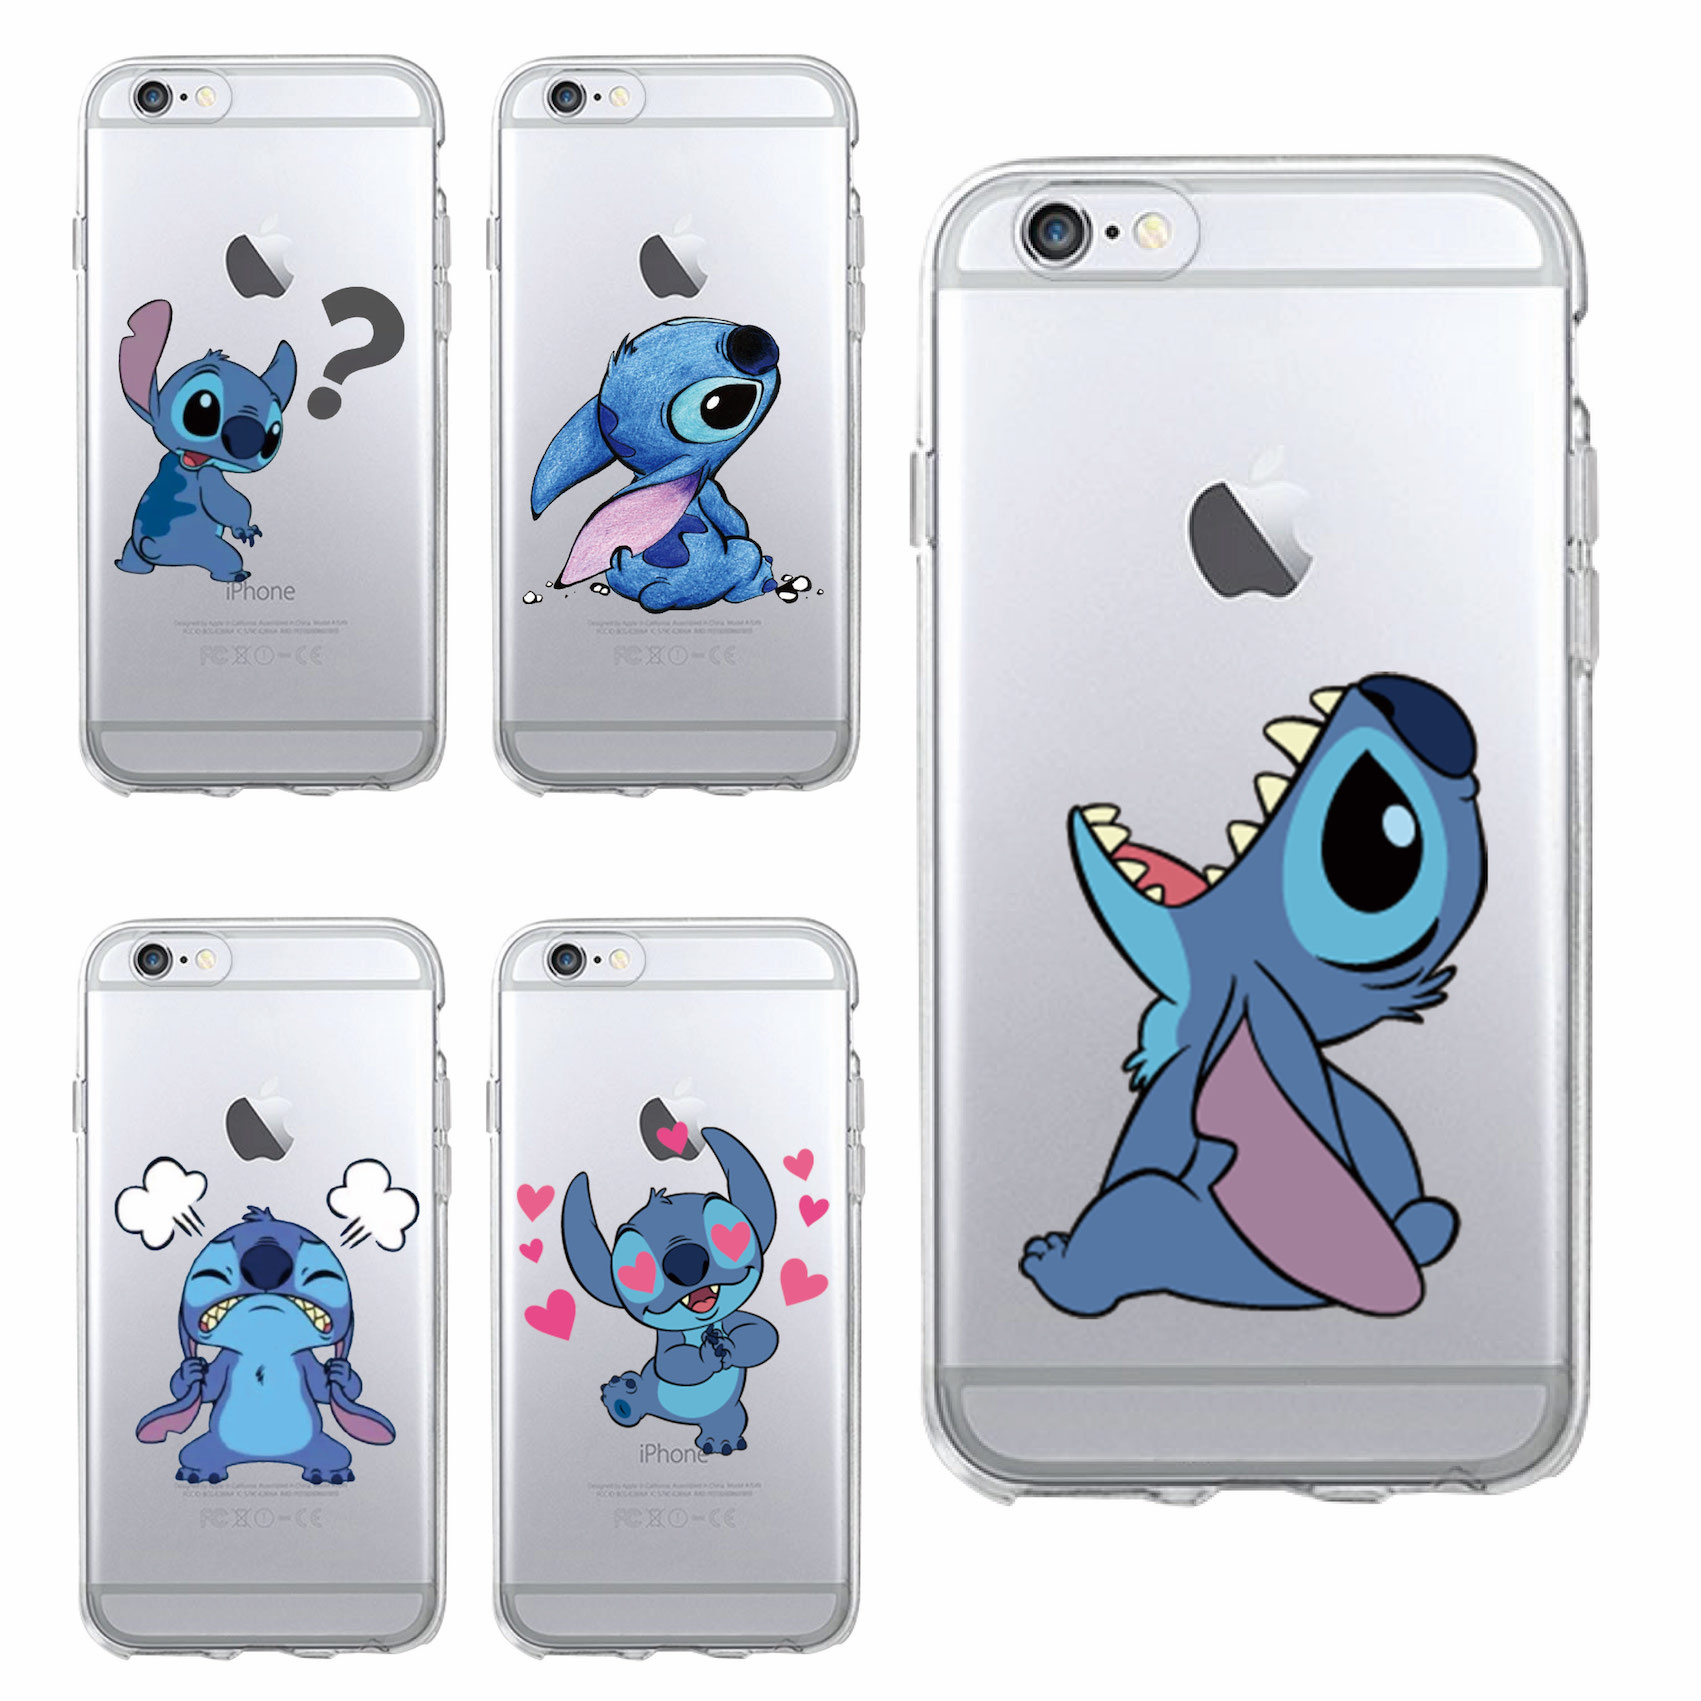 huge selection of 6eefb d2f89 US $1.49 25% OFF|For iPhone 6 6S 7 7Plus 5S 8 8Plus XS Max SAMSUNG Galaxy  Funny Cute Stitch Cartoon Emoji Soft TPU Clear Phone Case Fundas Coque-in  ...